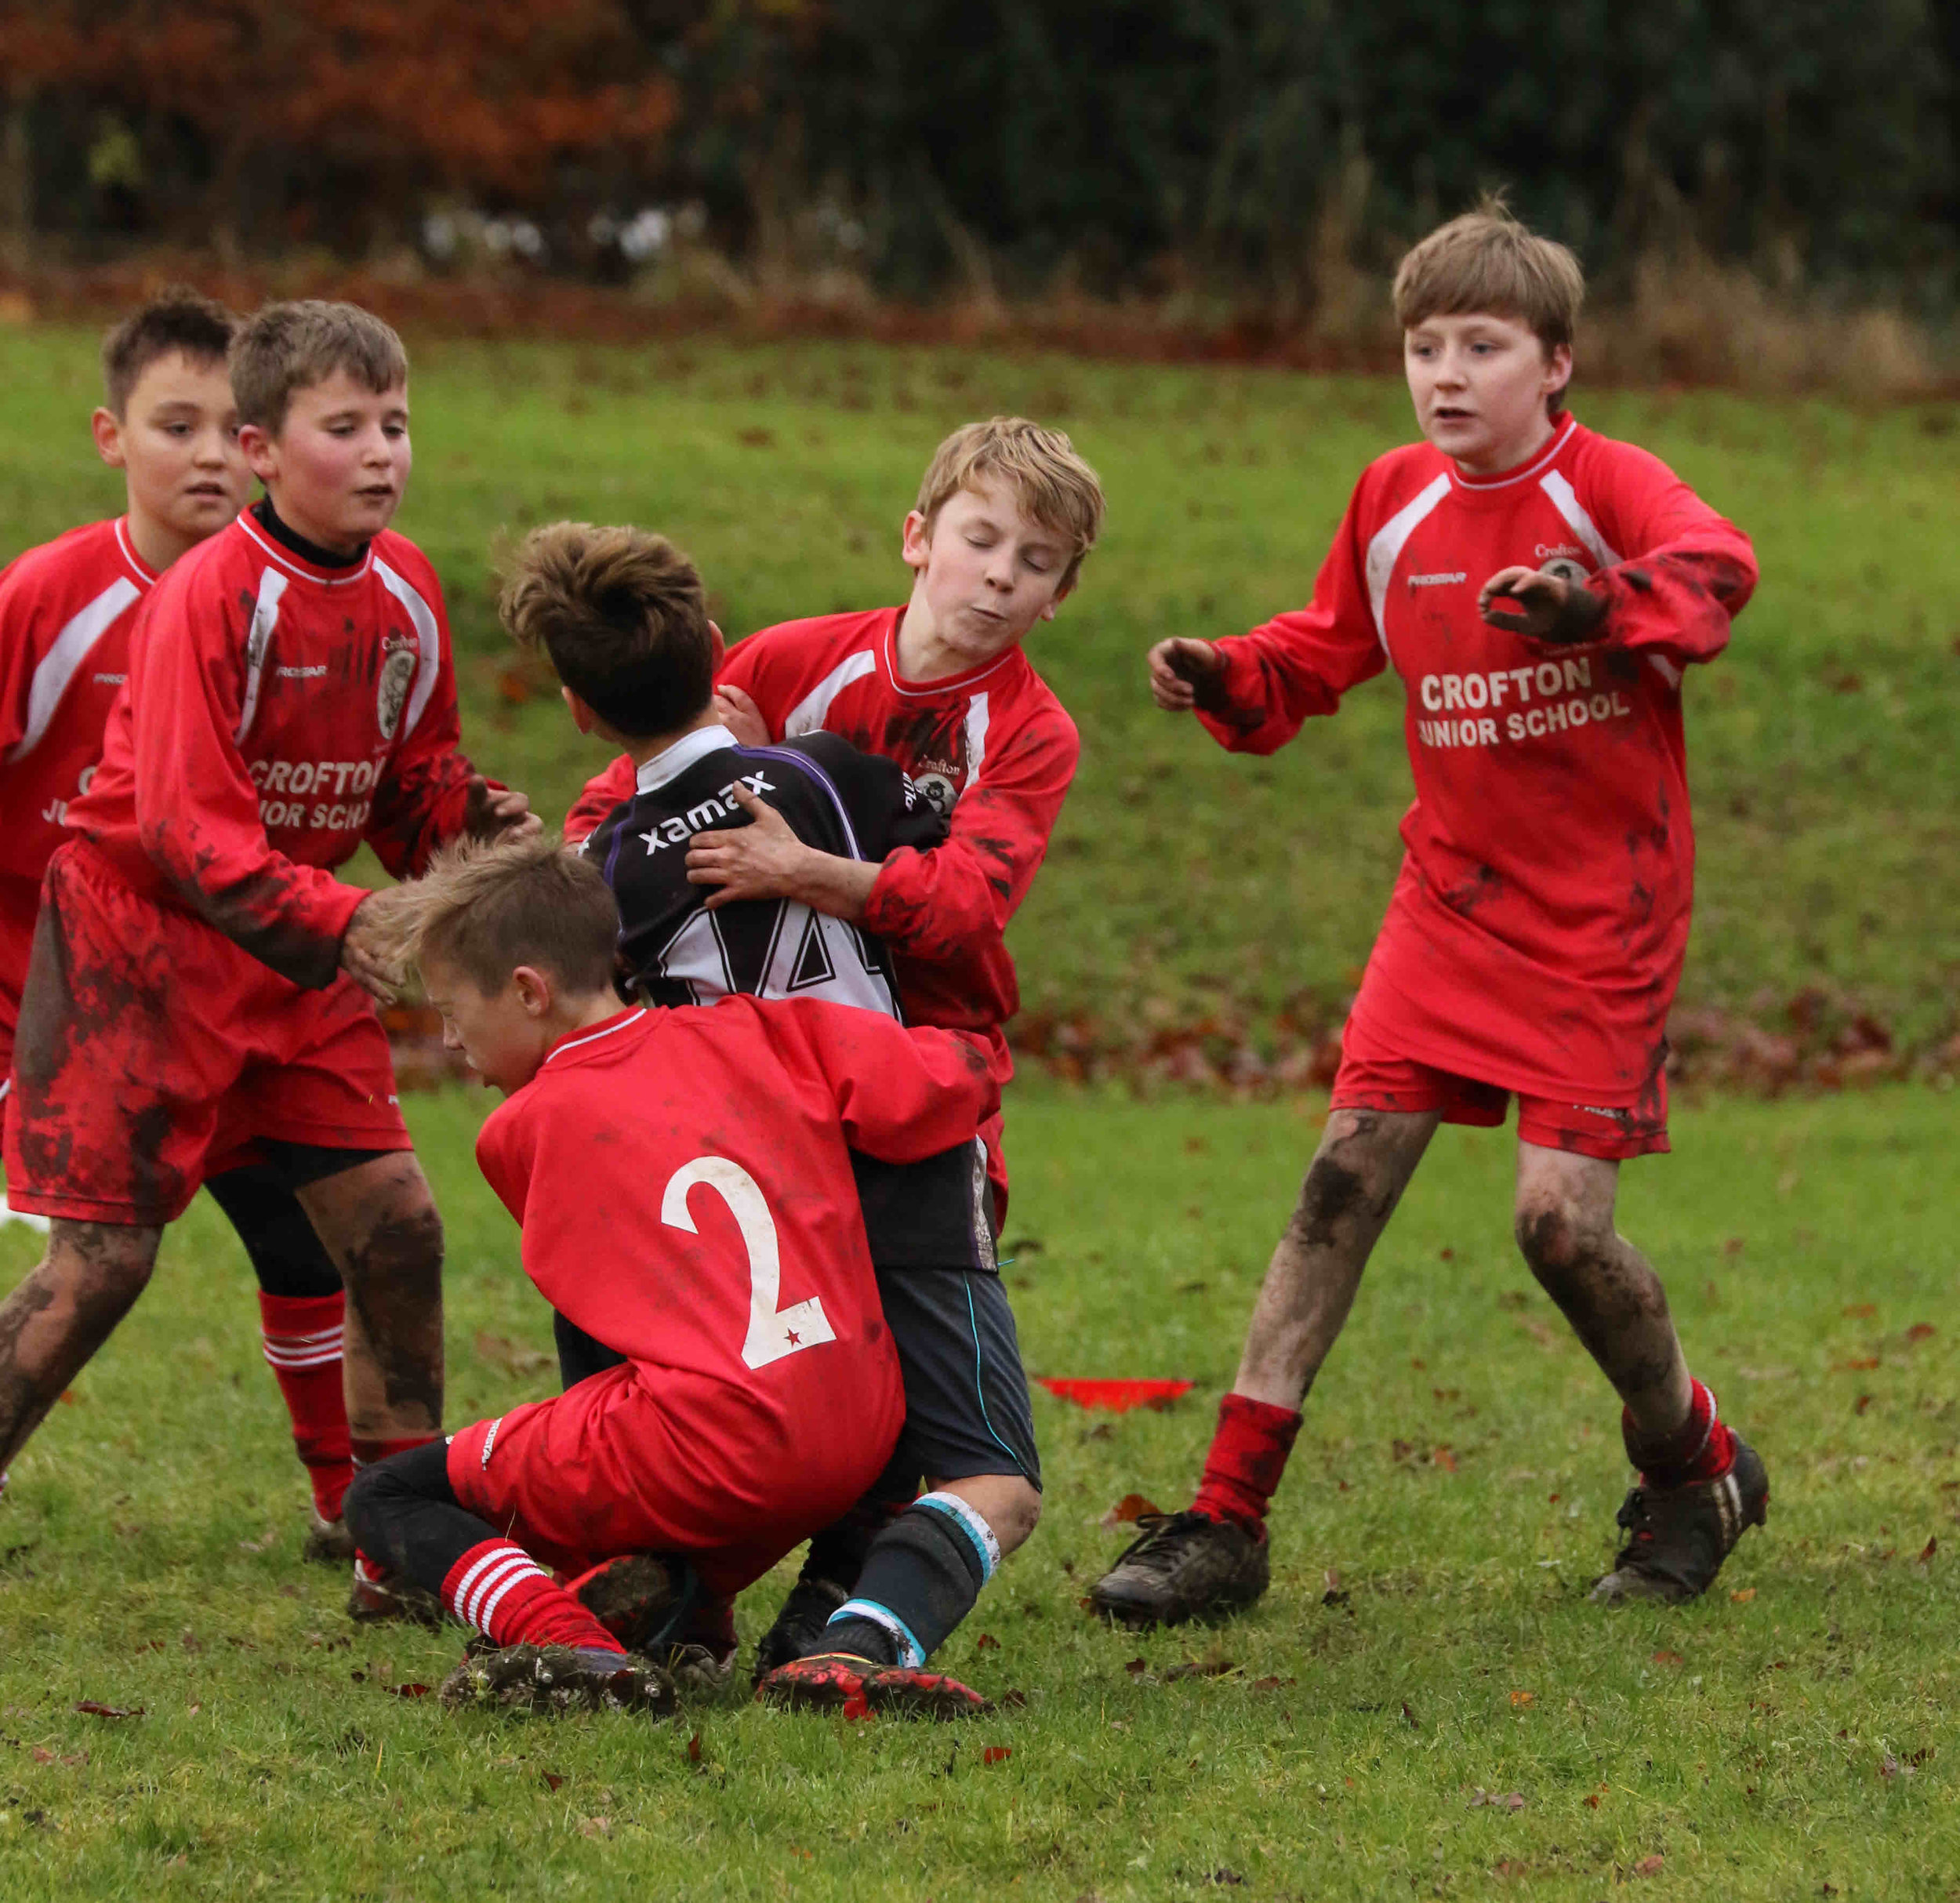 Full Contact Rugby @ walton Academy   Played at Walton Academy with teams from Walton, Crofton Juniors, South Kirby and the overall winners Sharlston.  For more great photos from this event click on the link  Full Contact Rugby